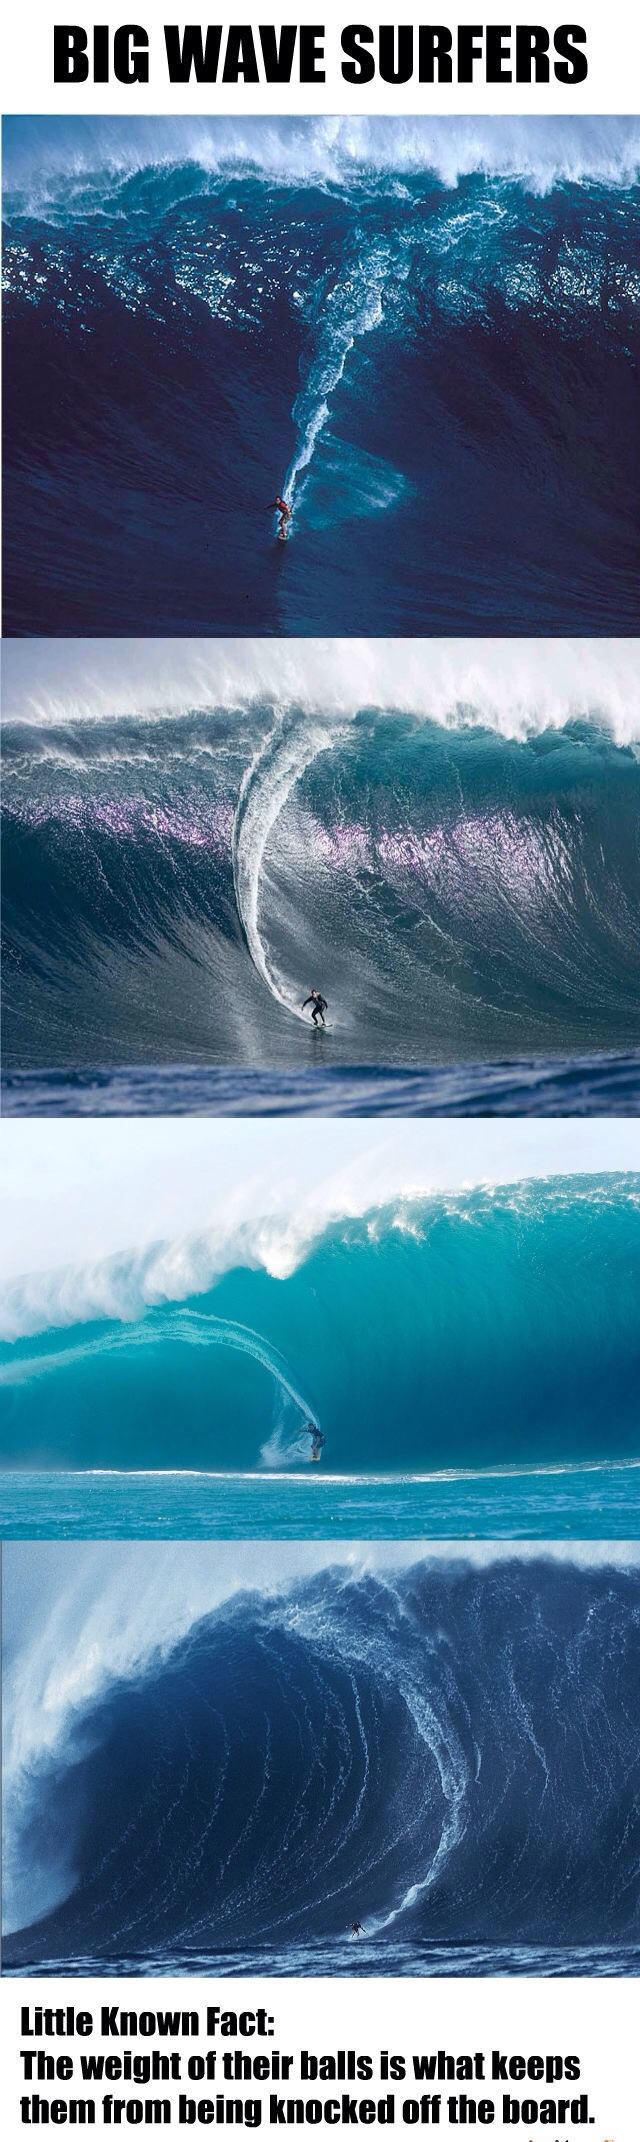 big wave surfers, the weight of their balls is what keeps them from being knocked off the board